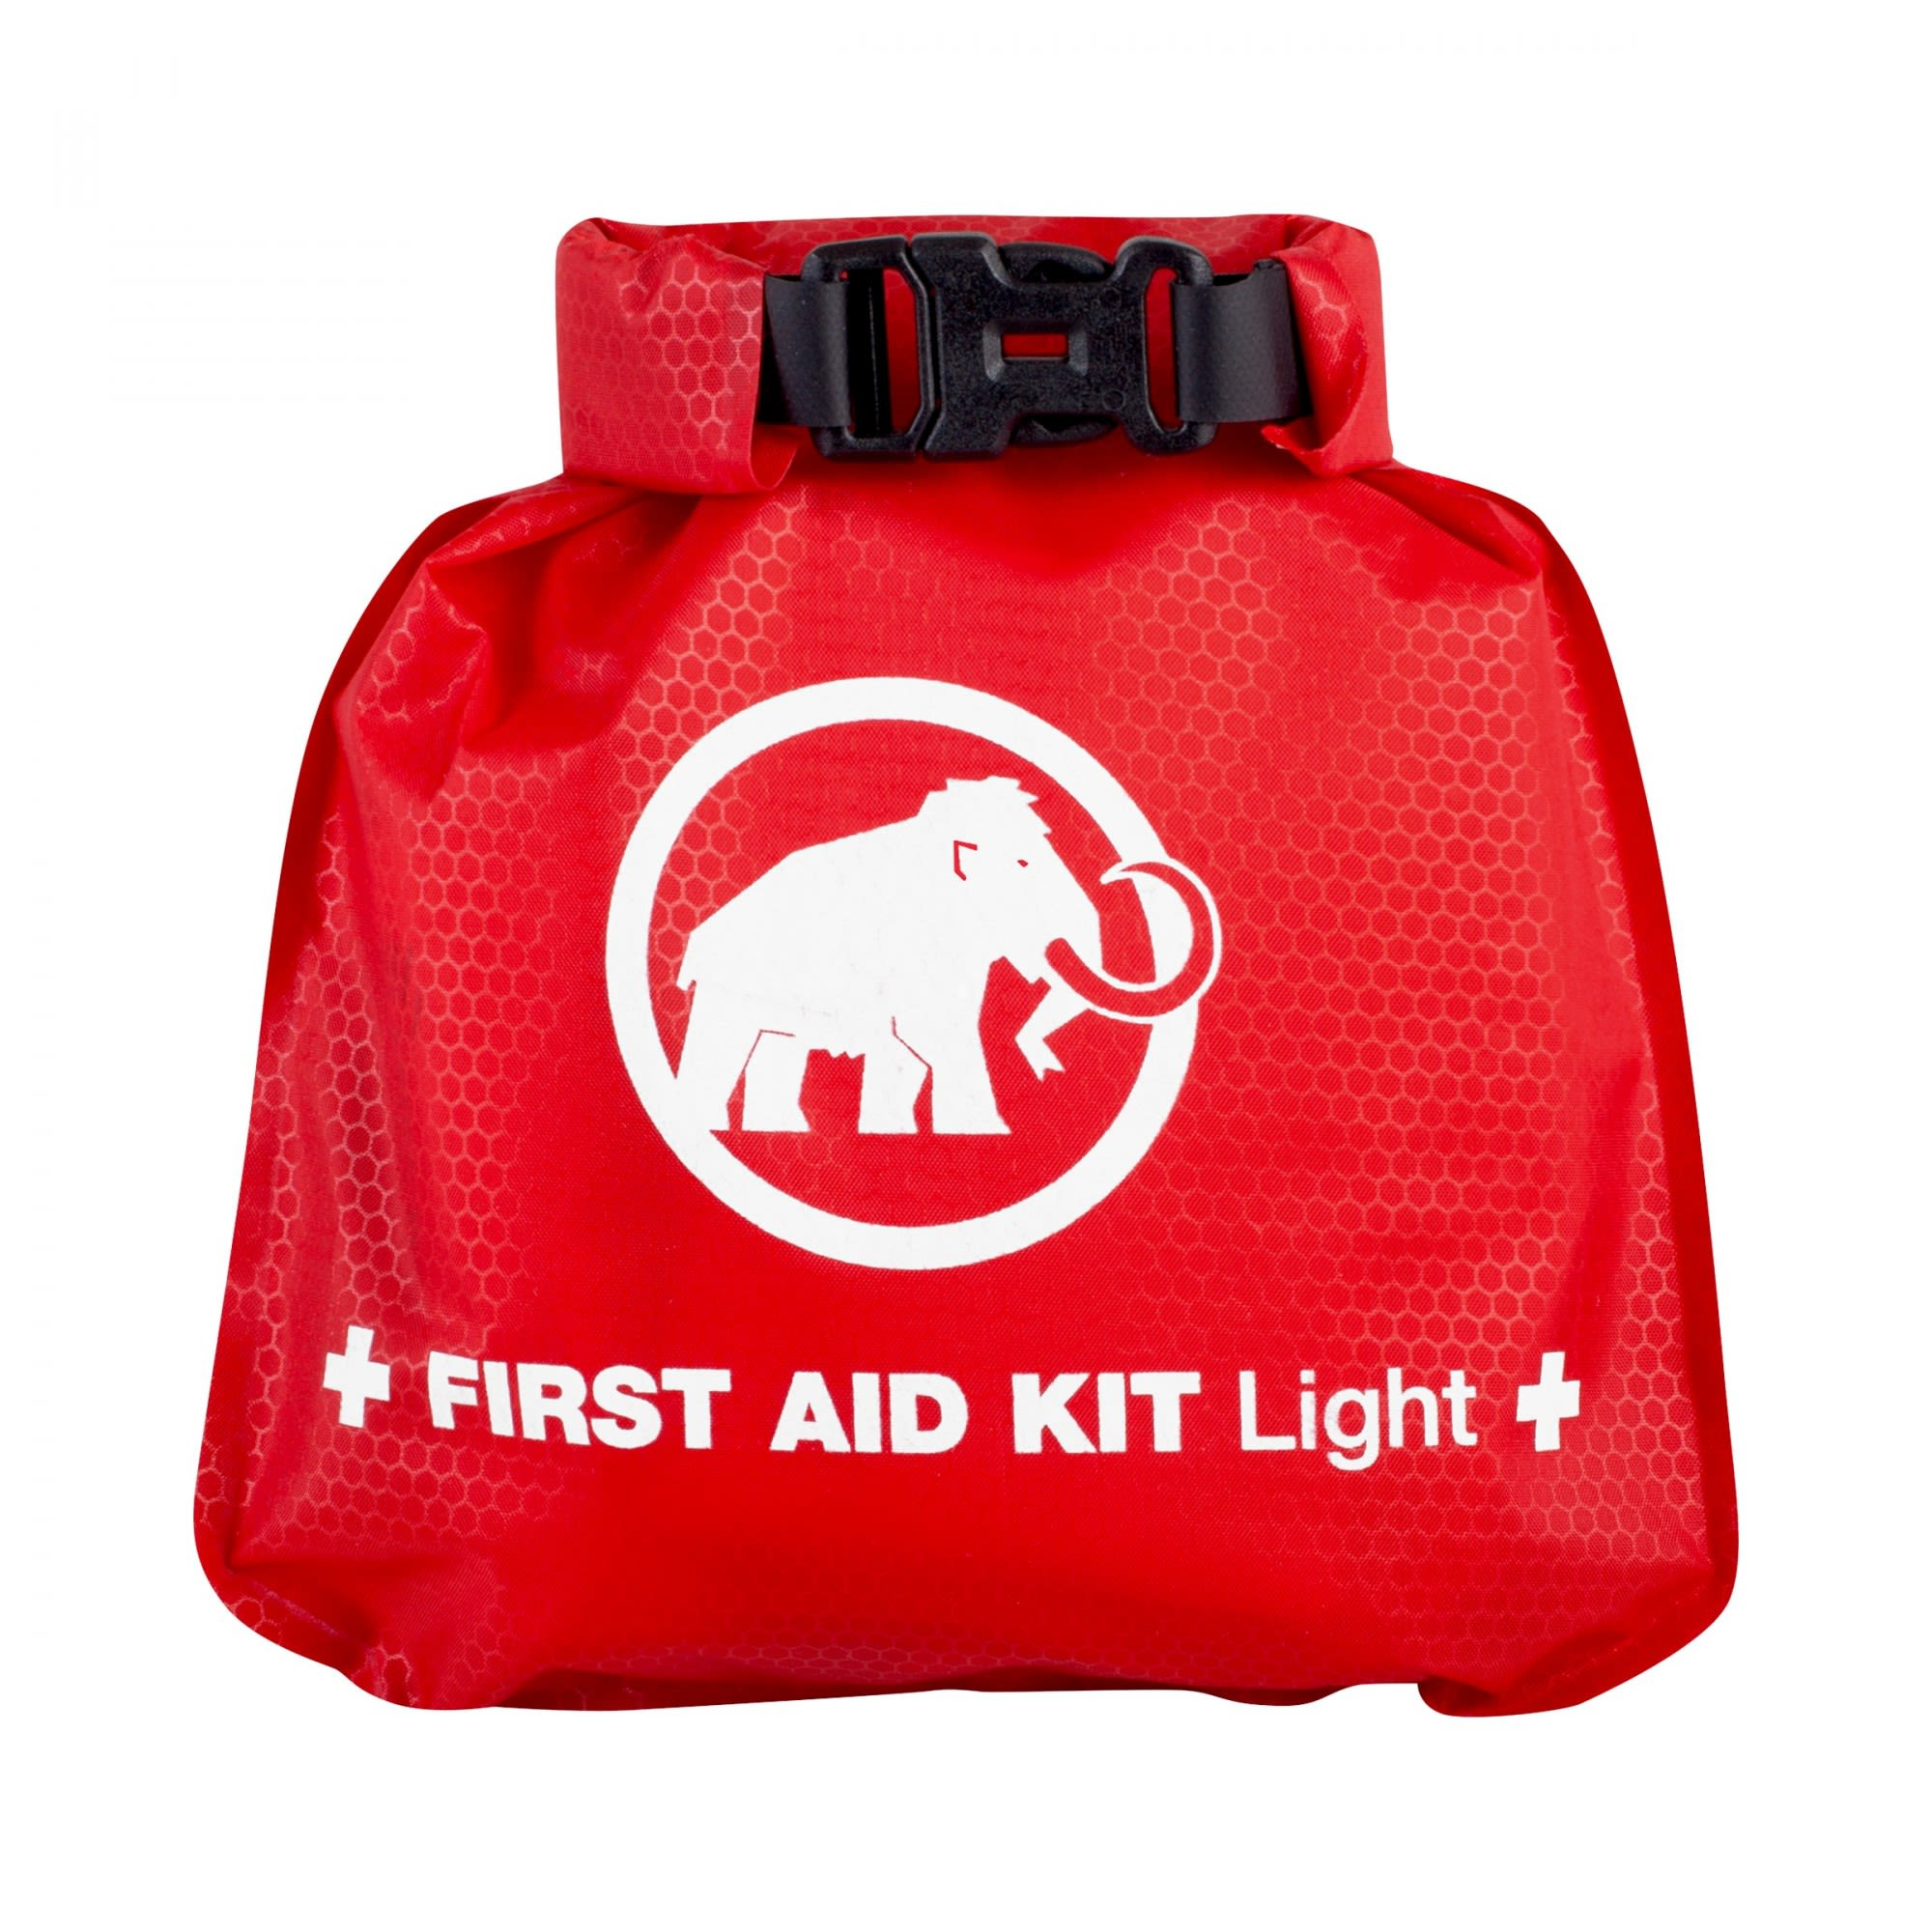 Mammut First AID KIt Light Rot, One Size -Farbe Poppy, One Size